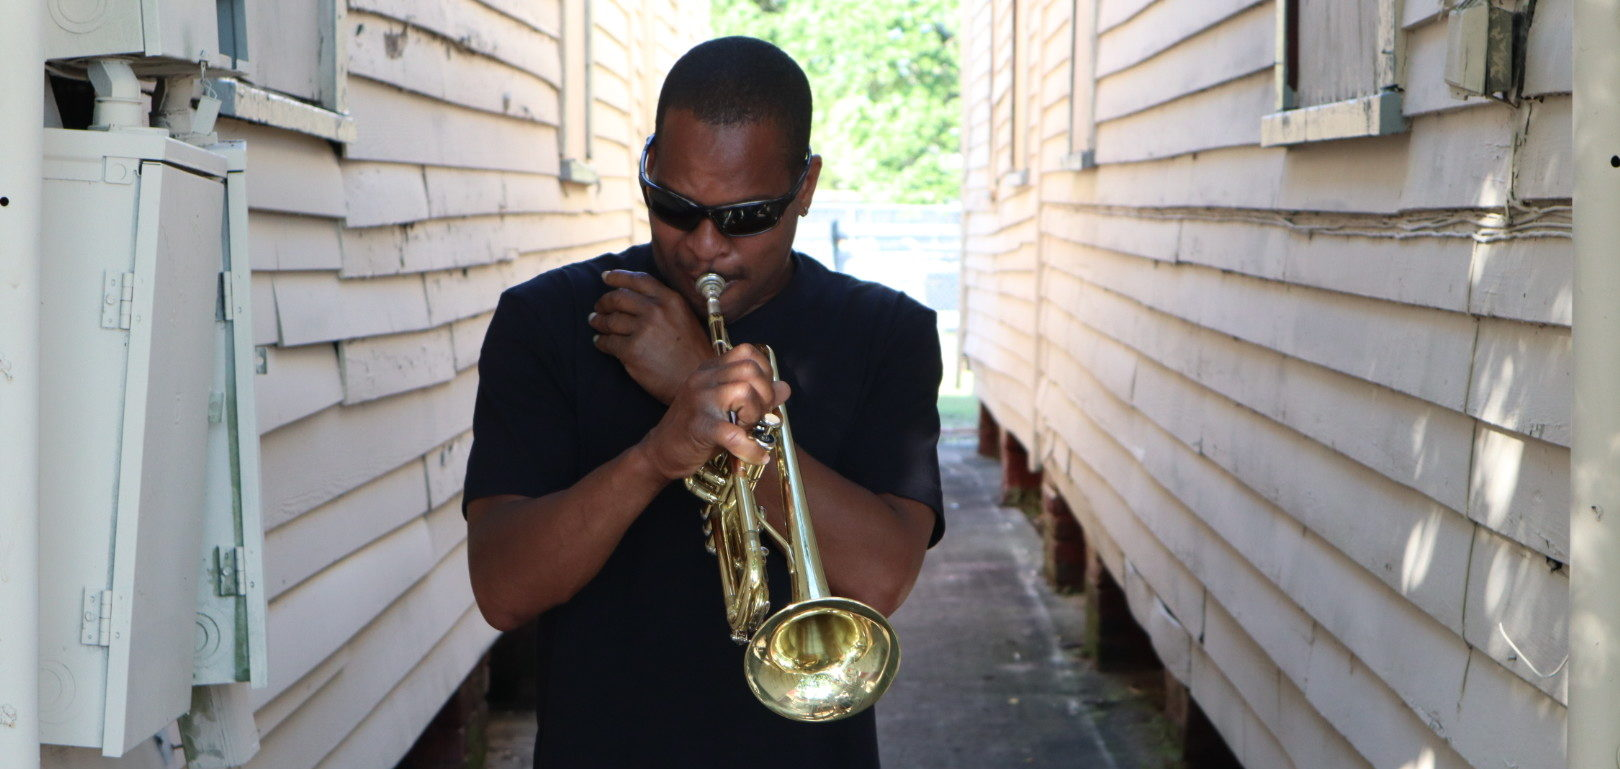 Derrick Shezbie, trumpeter of Rebirth Brass Band, practicing his trumpet on the side of Buddy Bolden's house.